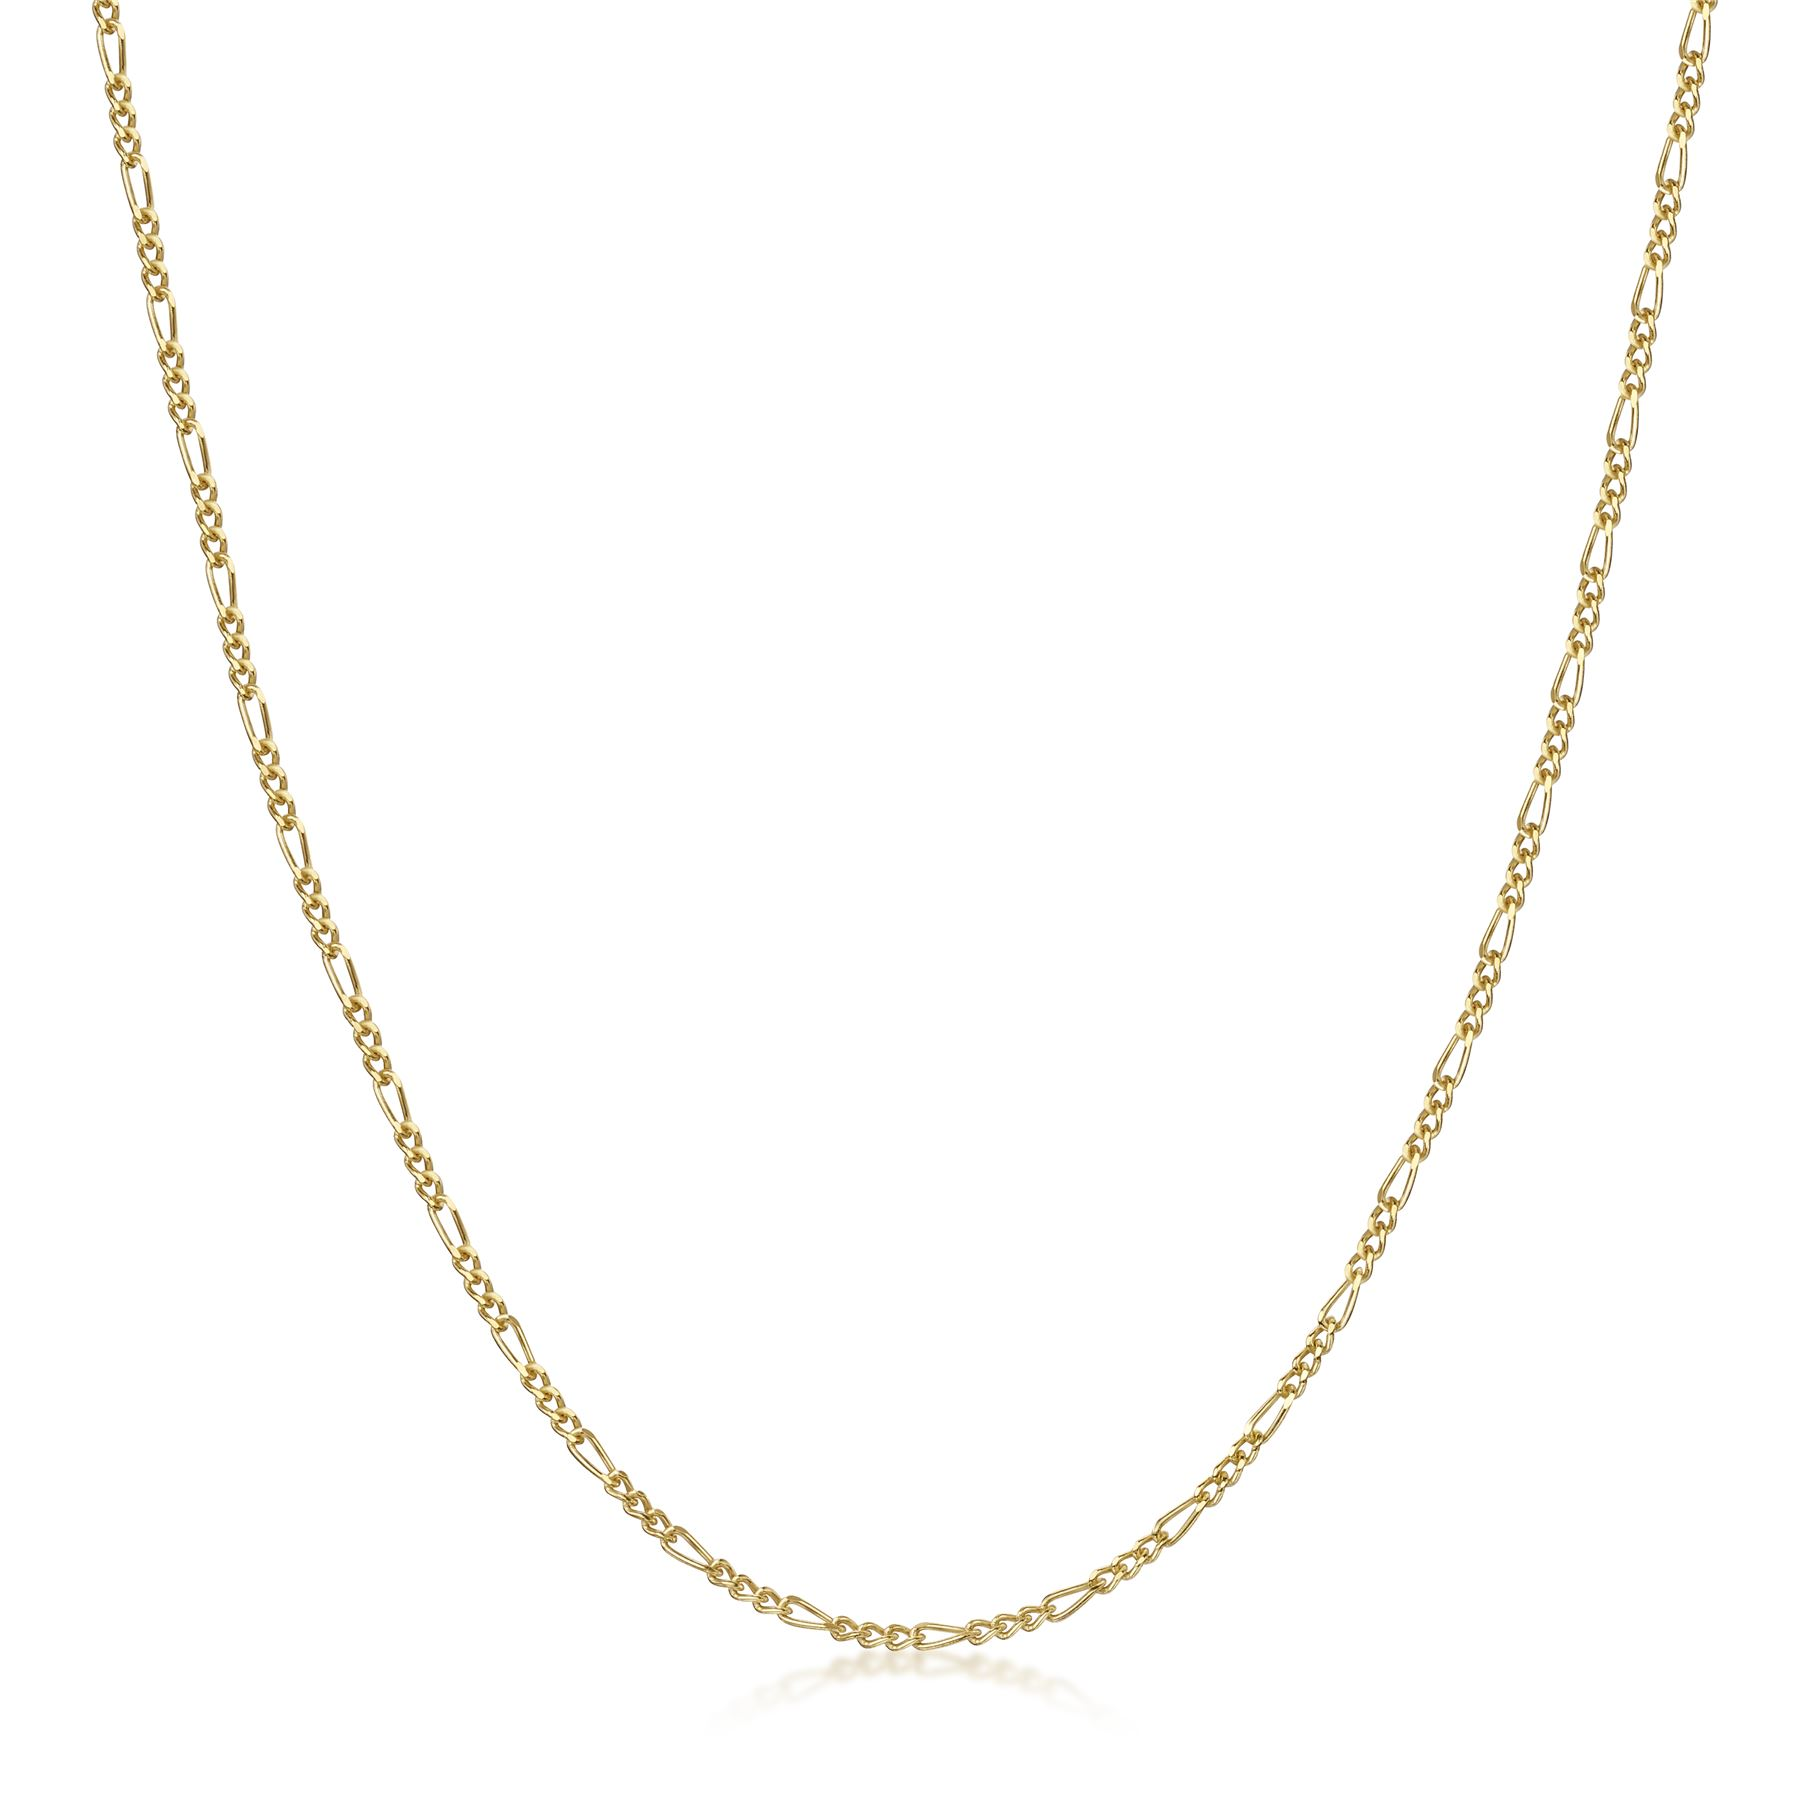 Amberta-Genuine-Gold-Plated-on-Real-925-Sterling-Silver-Necklace-Chain-Italy miniatura 23